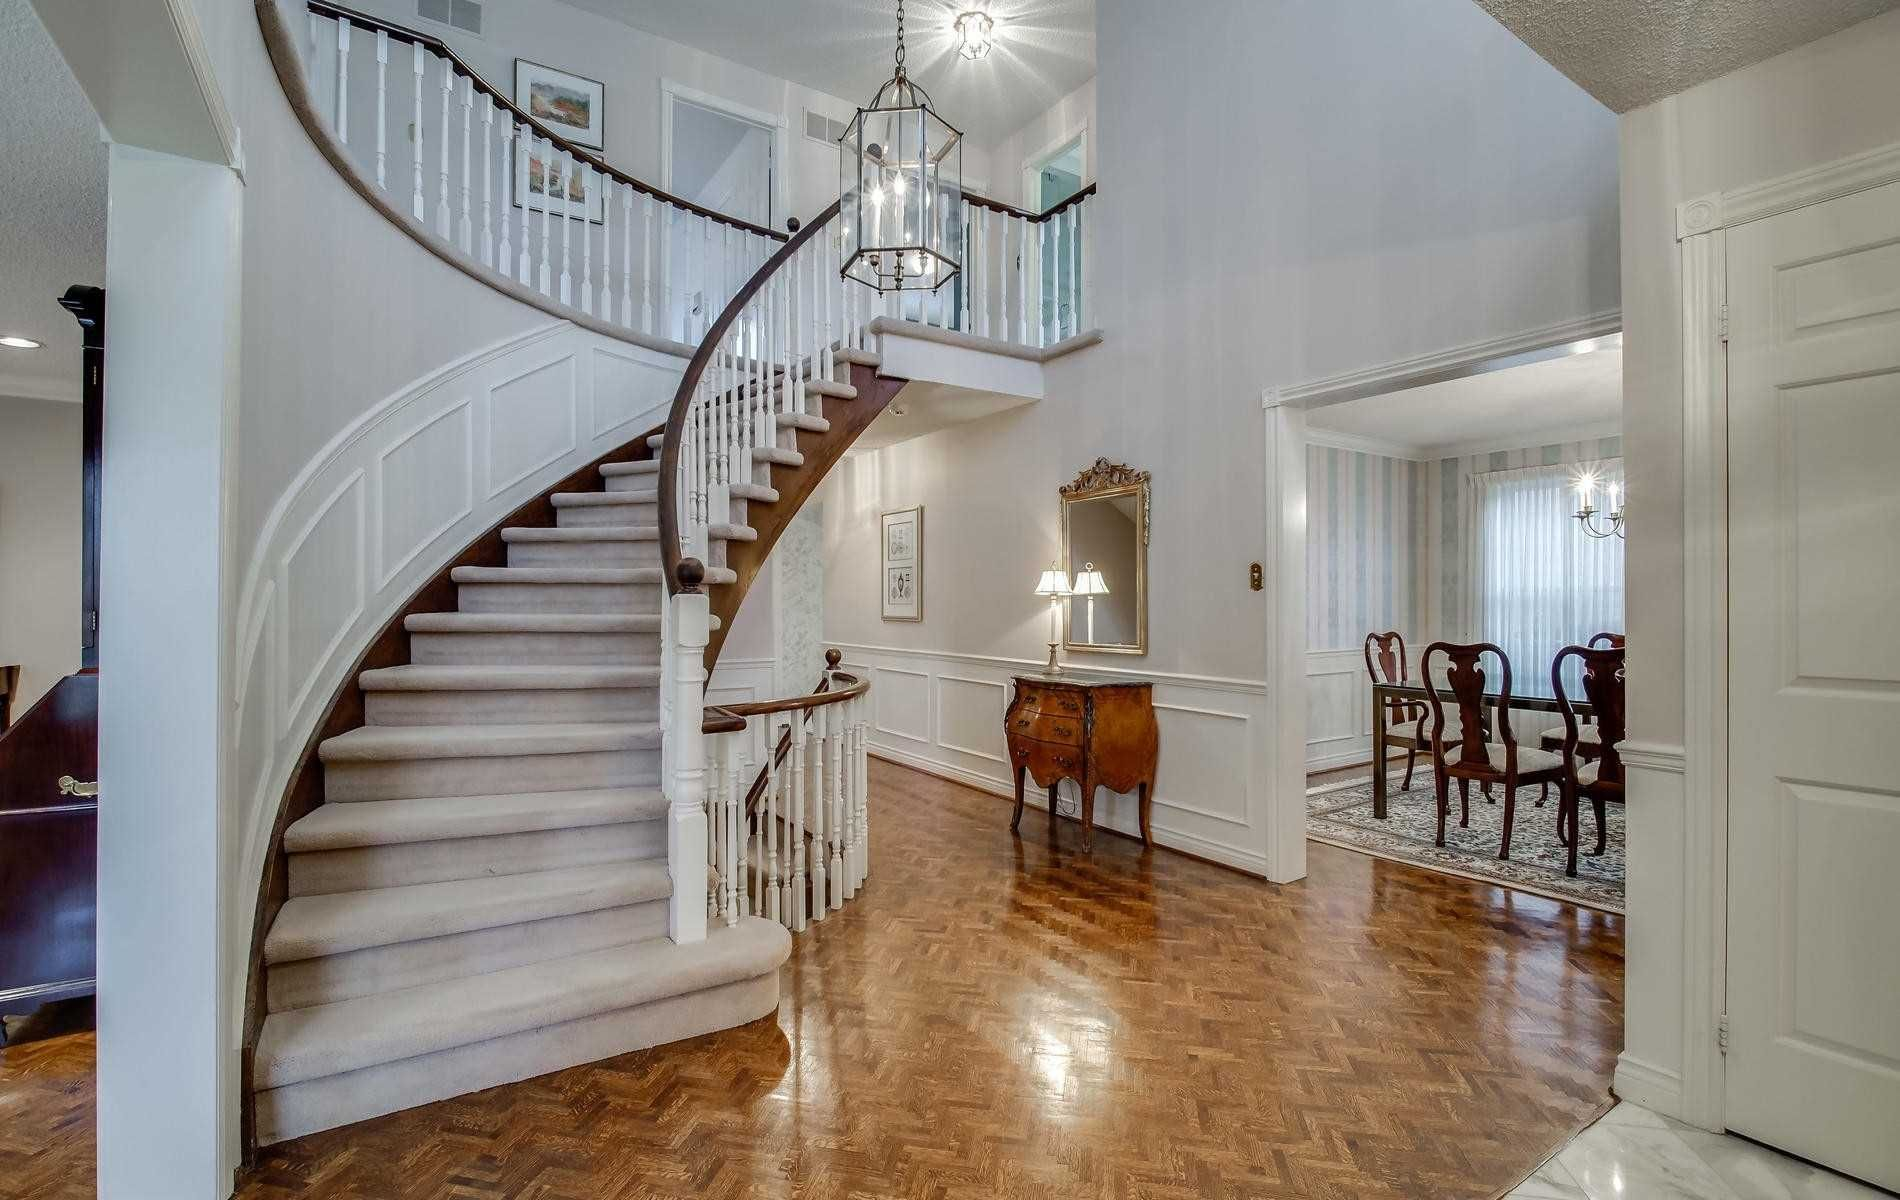 Photo 4: Photos: 498 Hidden Trail in Toronto: Westminster-Branson House (2-Storey) for sale (Toronto C07)  : MLS®# C4709173